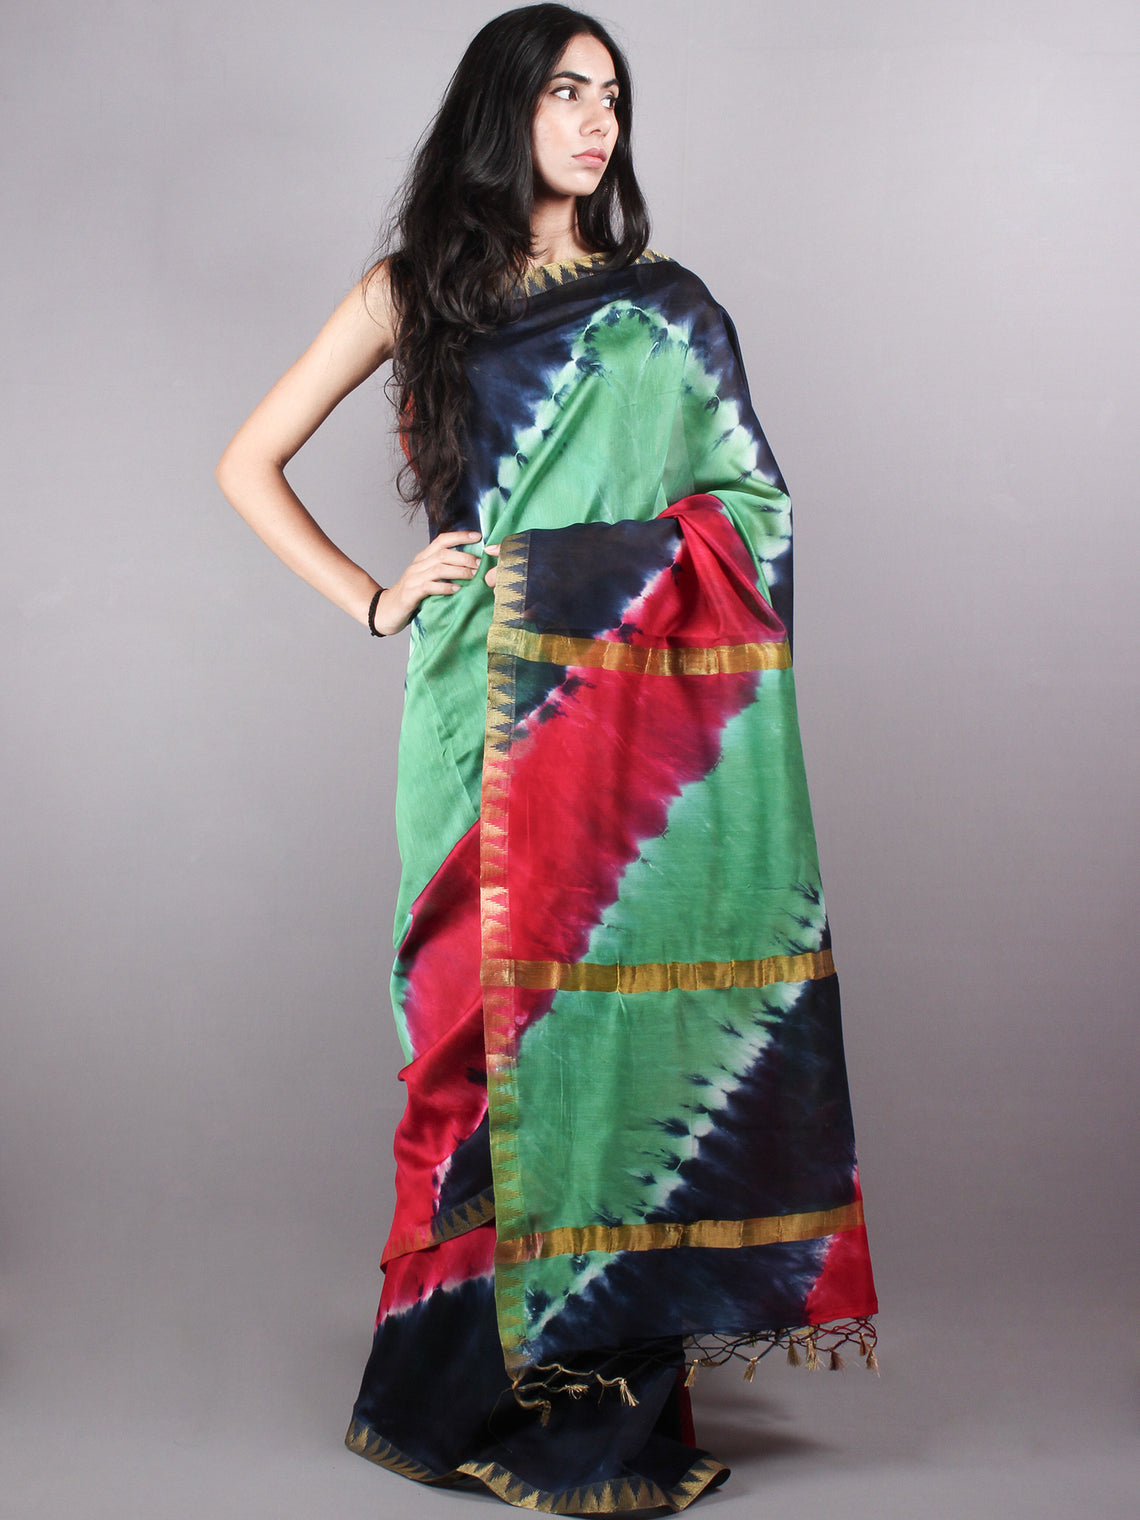 Multi Color Mint Green Marvel Hand Shibori Dyed in Natural Colors Chanderi Saree with Geecha Border - S03170136